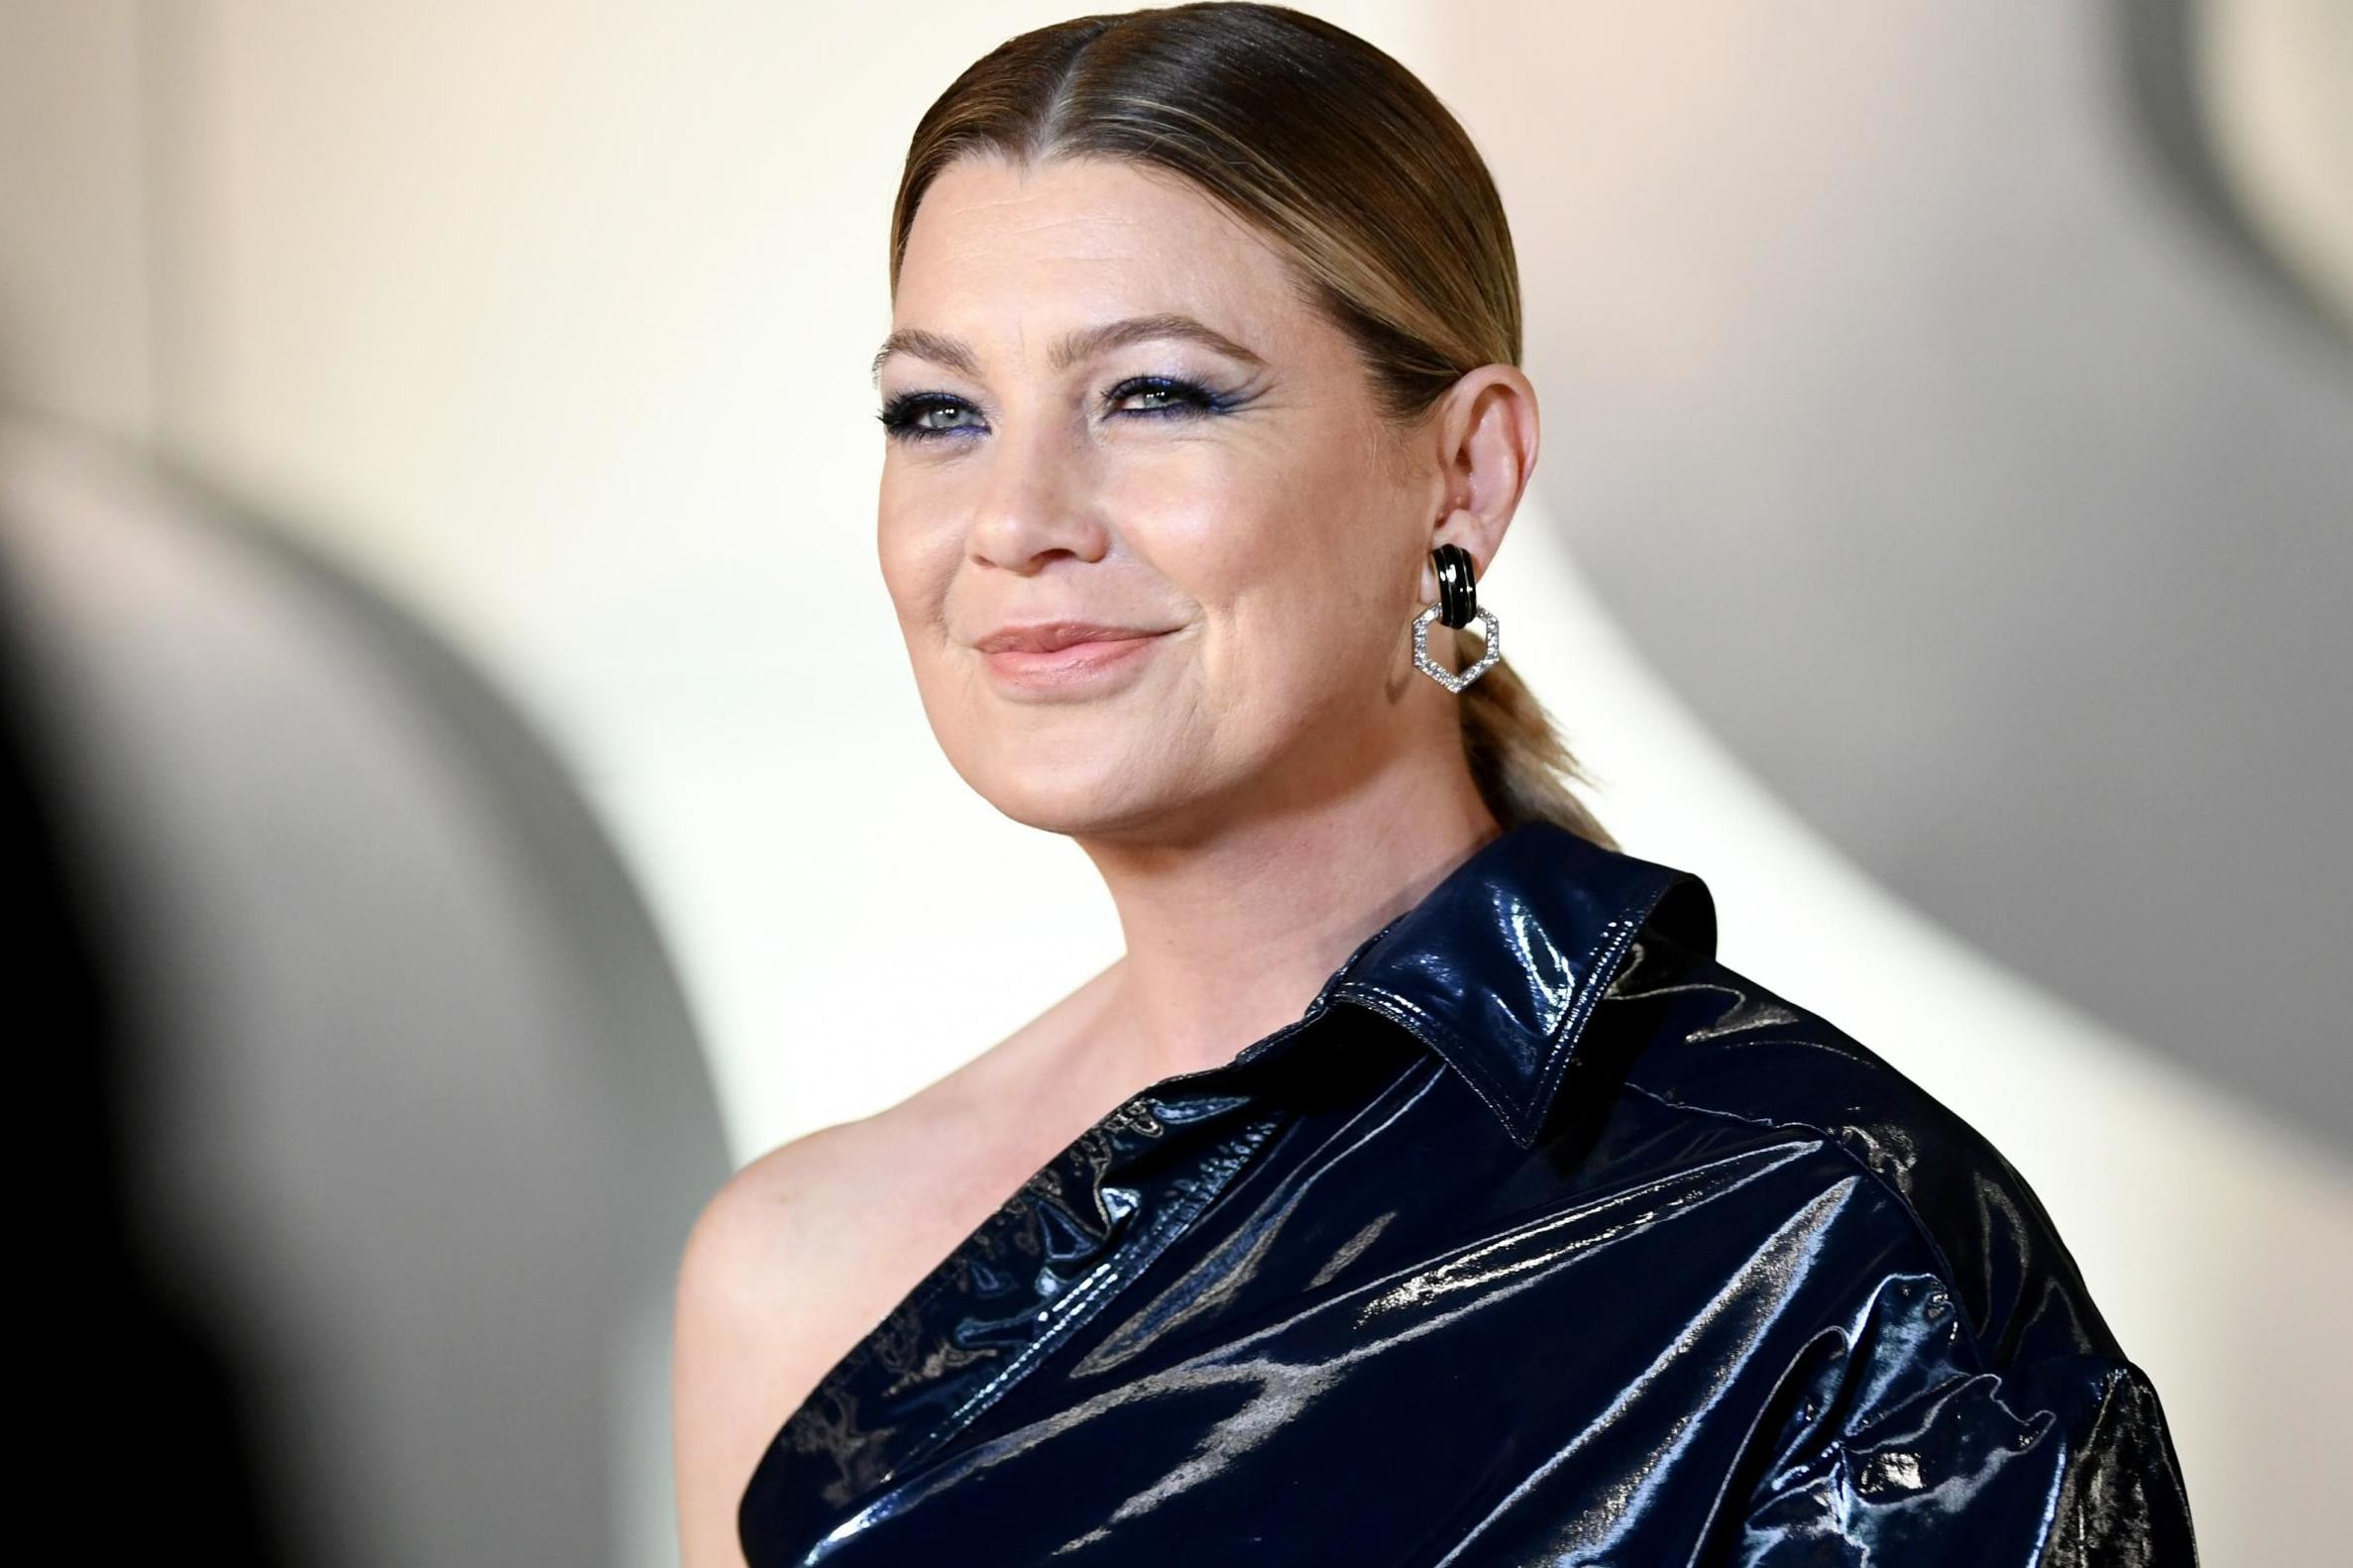 Ellen Pompeo urges white people to take action against lack of diversity in Hollywood